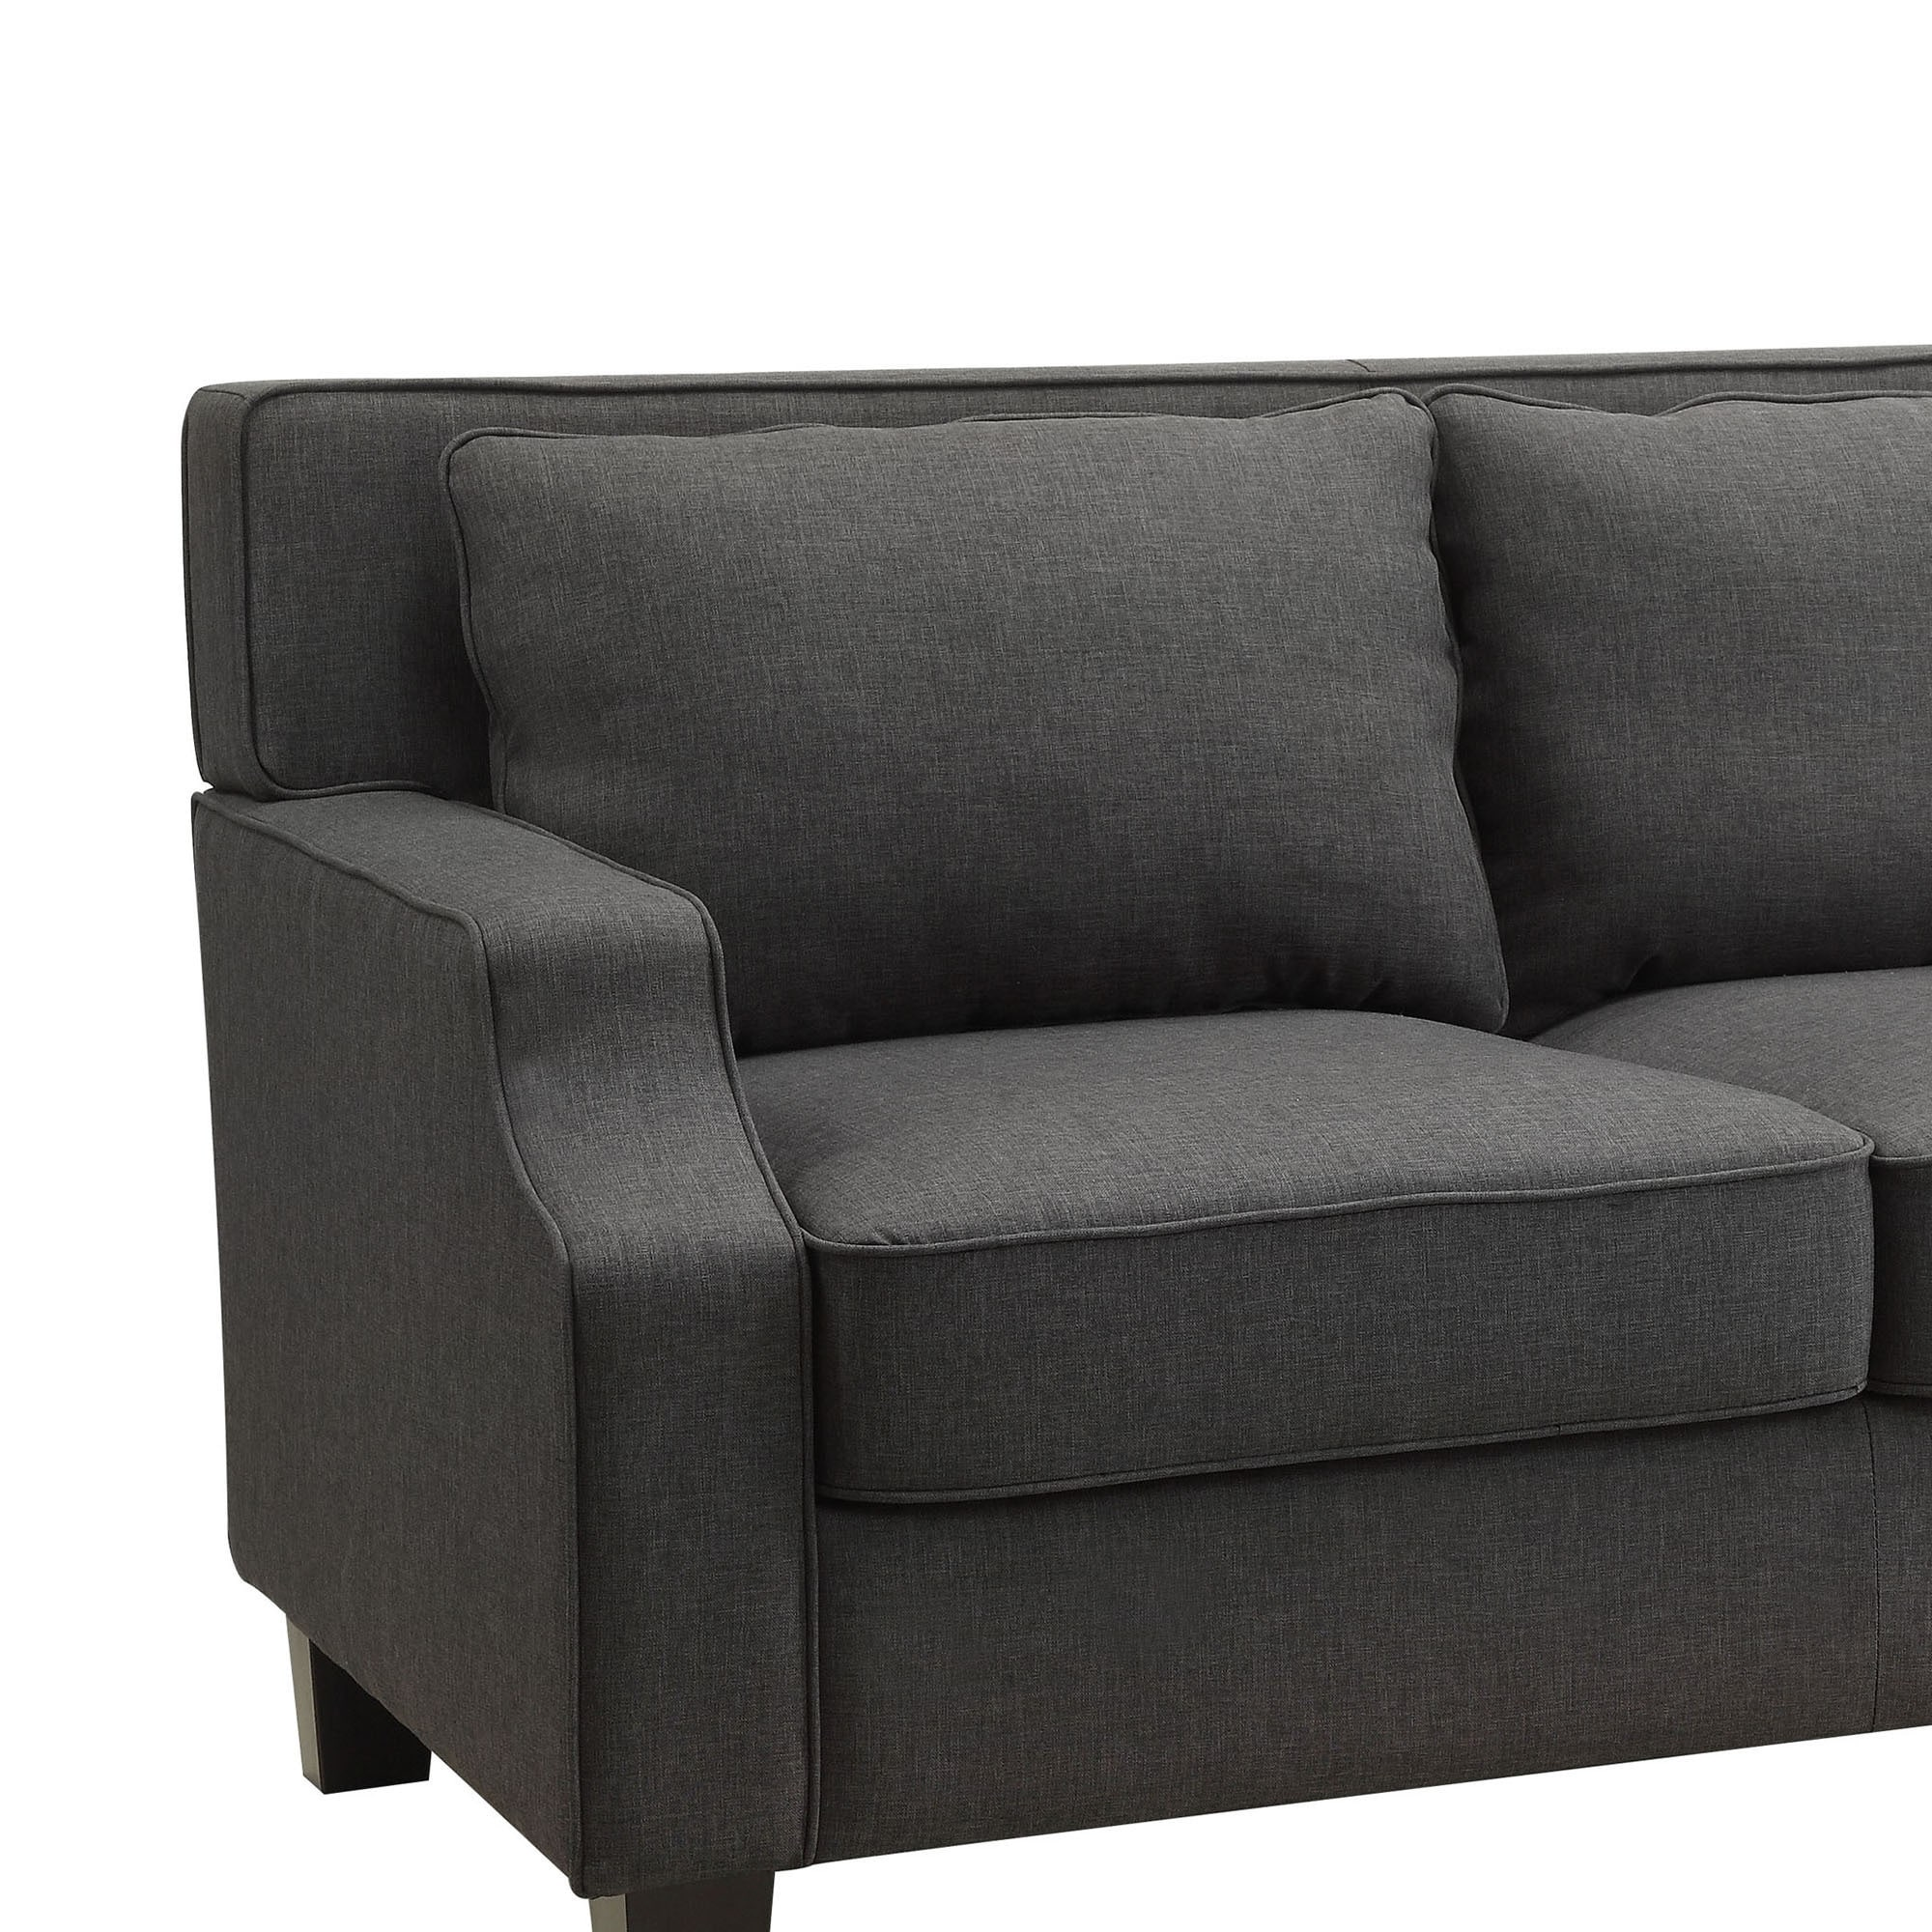 Broadway Dark Grey Fabric Sloped Track Arm Sofa by INSPIRE Q - Free  Shipping Today - Overstock.com - 16076487